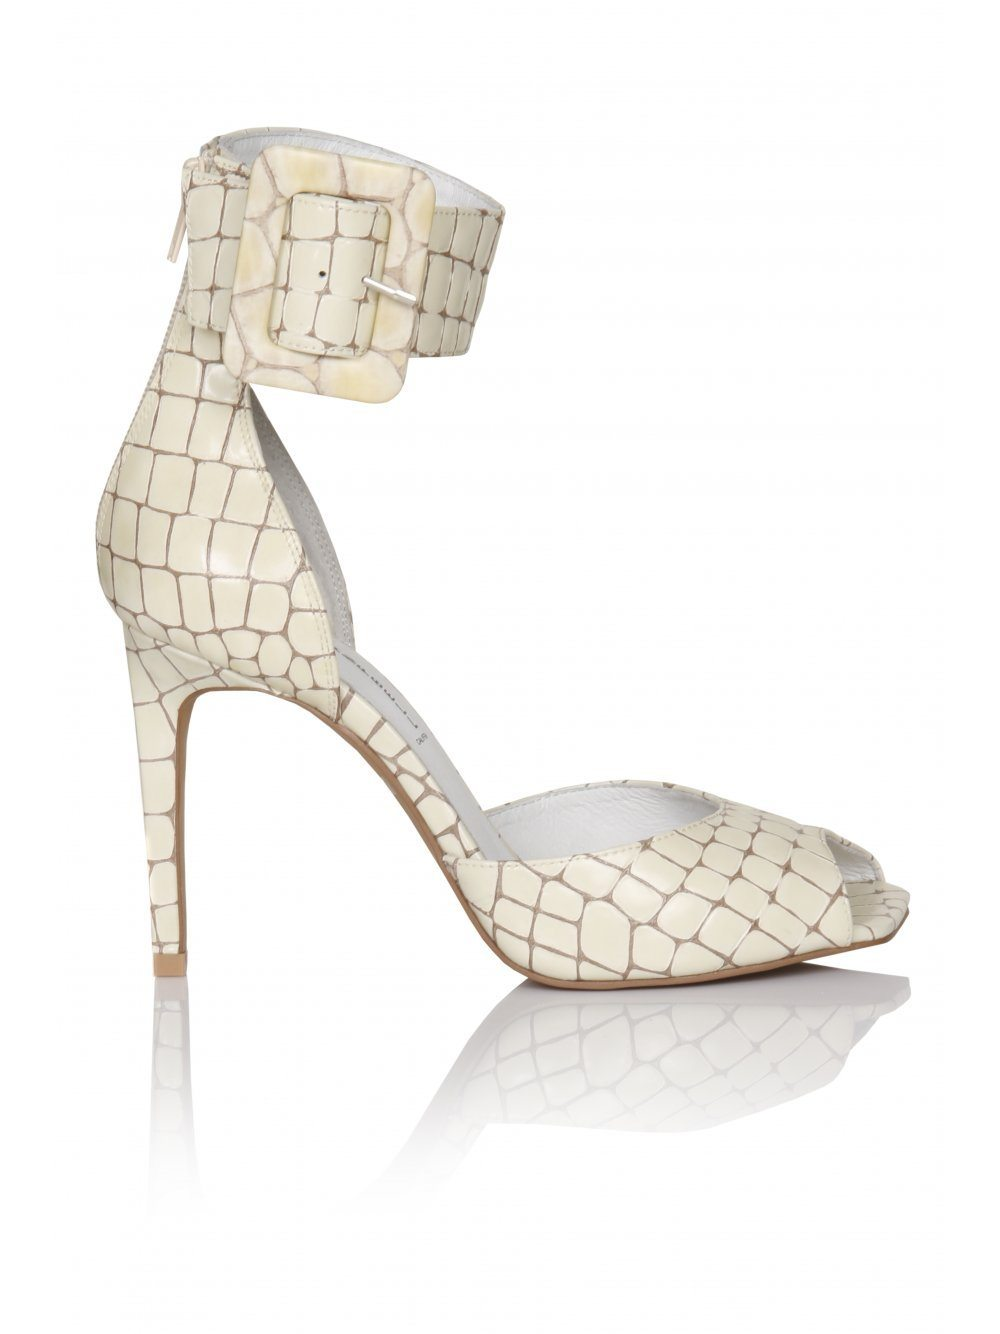 Mikado Ivory Croc Leather Ankle Cuff  Sandals